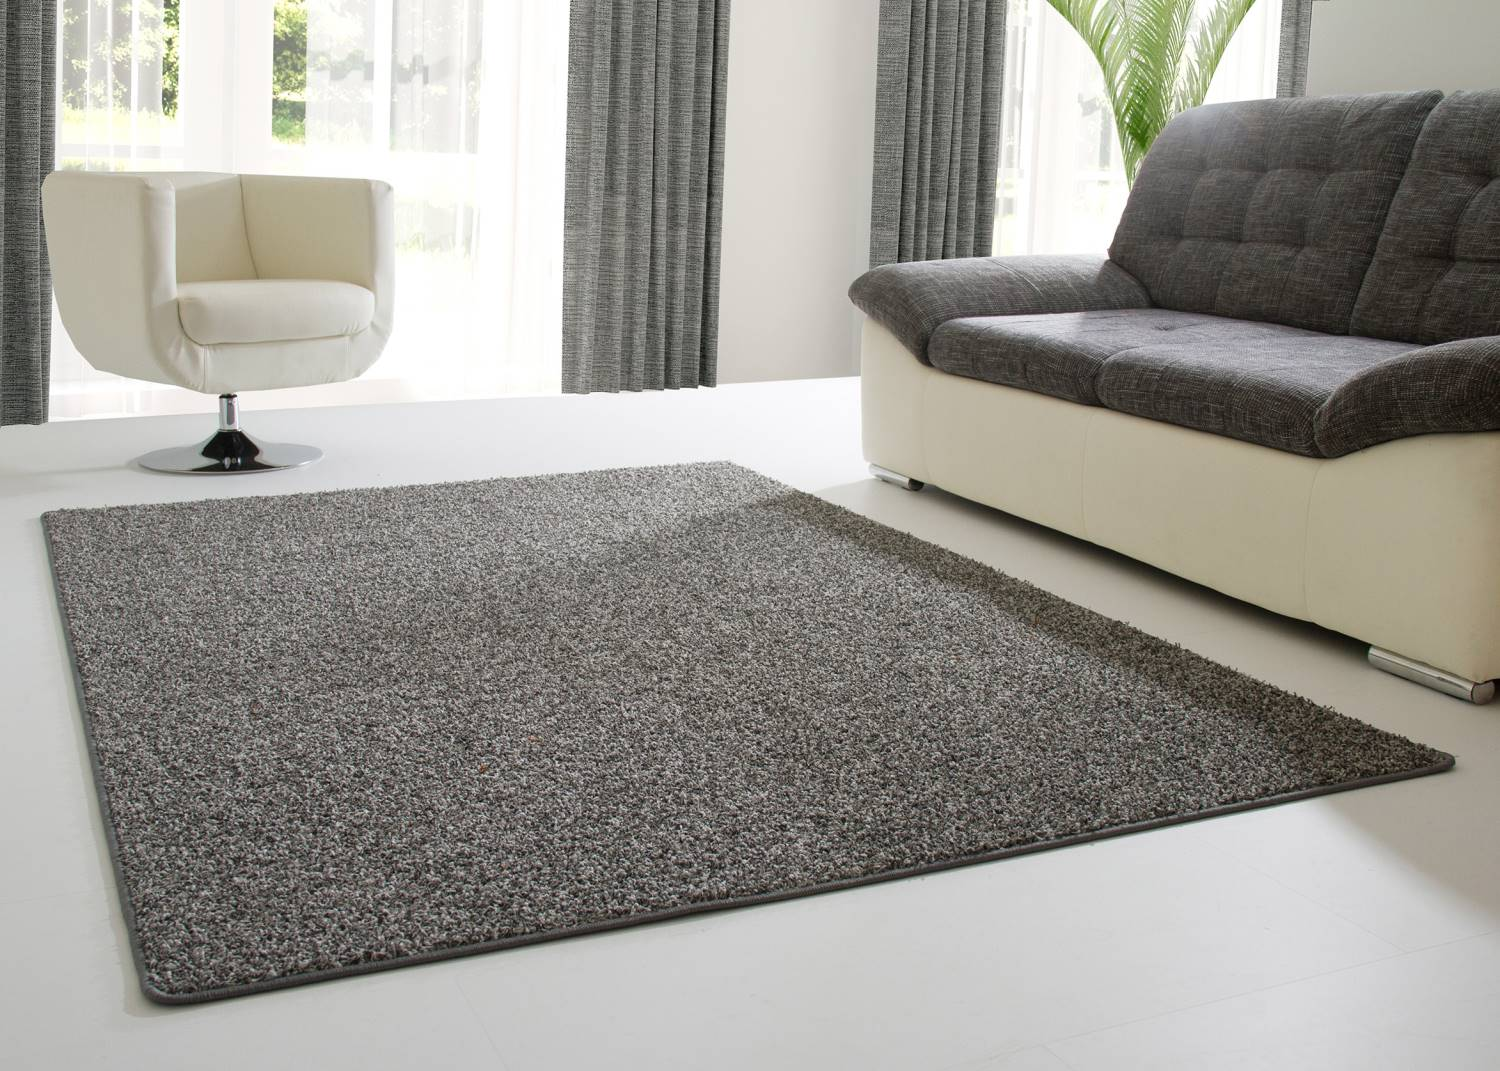 Outdoor Teppich 100x200 Hochflor Teppich Fleetwood Global Carpet